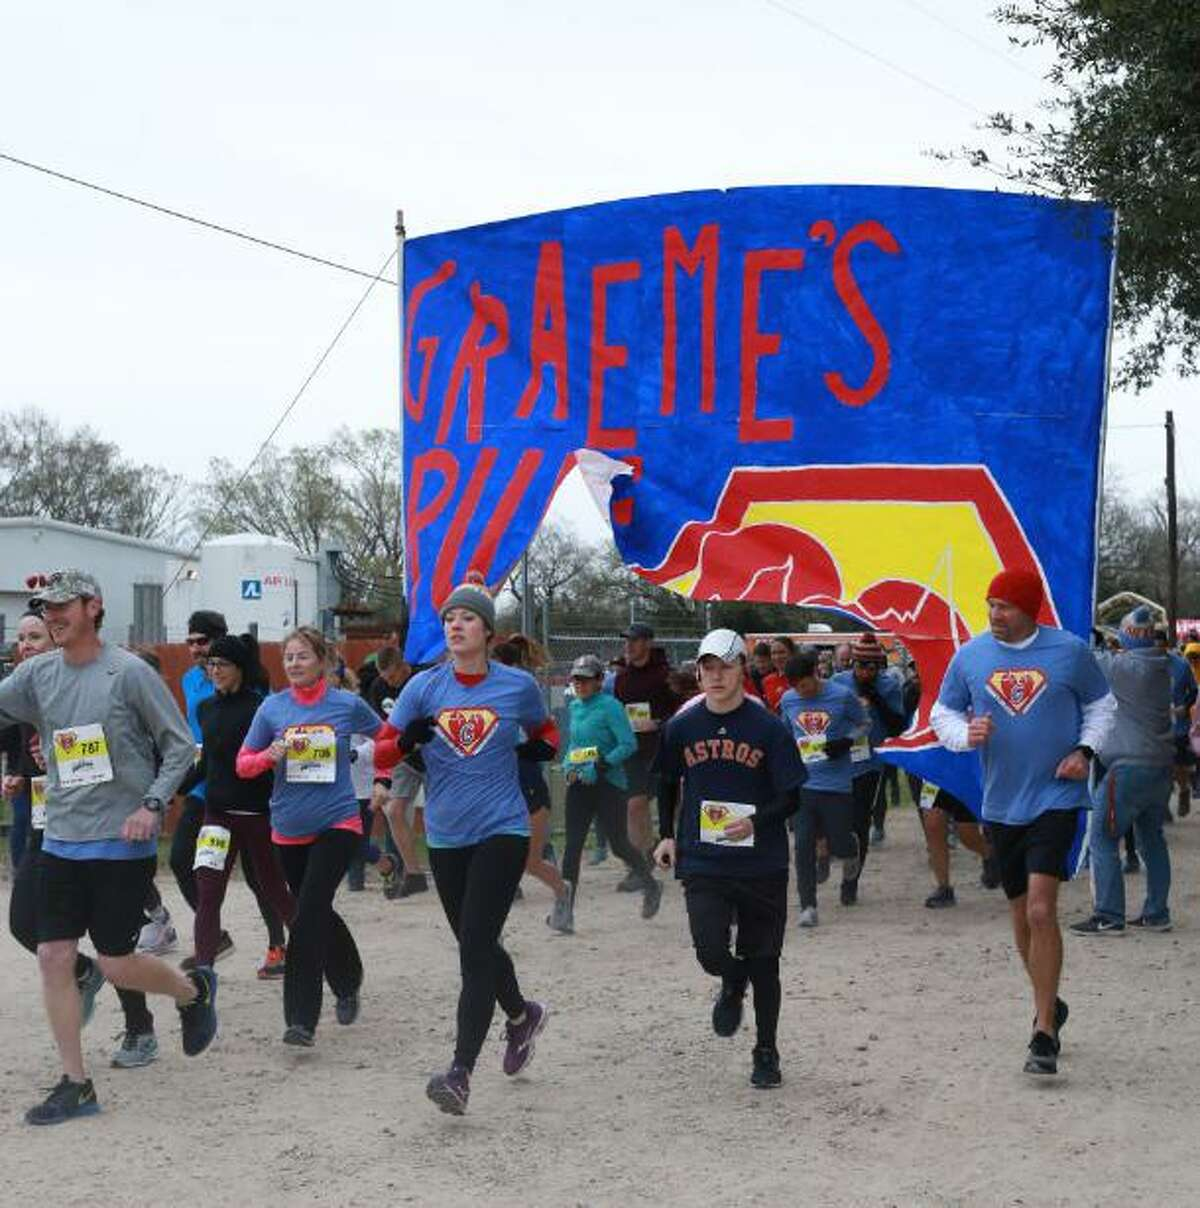 Chilly weather didn't discourage a record field of participants in the fourth annual Graeme's Run on Feb. 9, 2019, in Katy. The event raised $93,000, $30,000 more than the previous year.